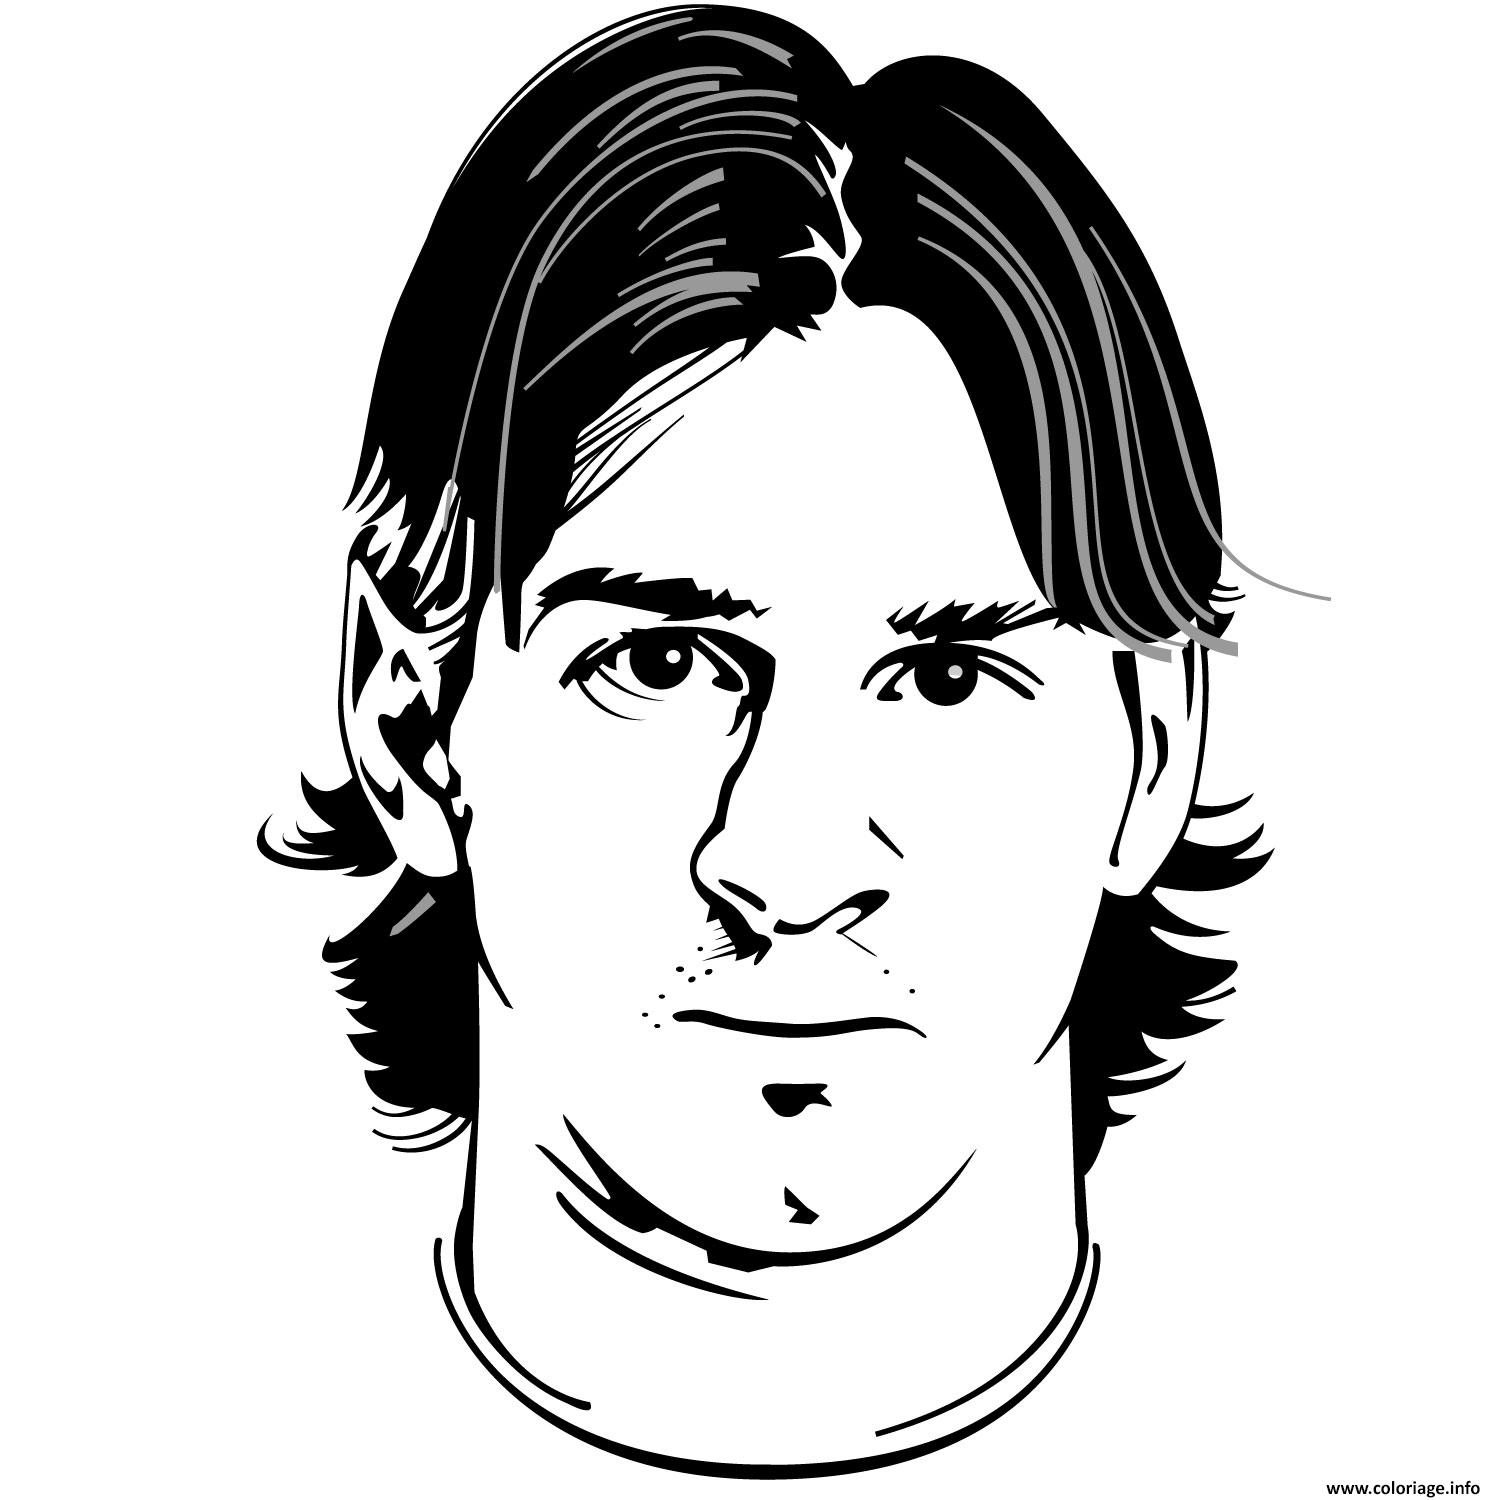 Coloriage portrait foot lionel messi visage dessin - Coloriage visage ...